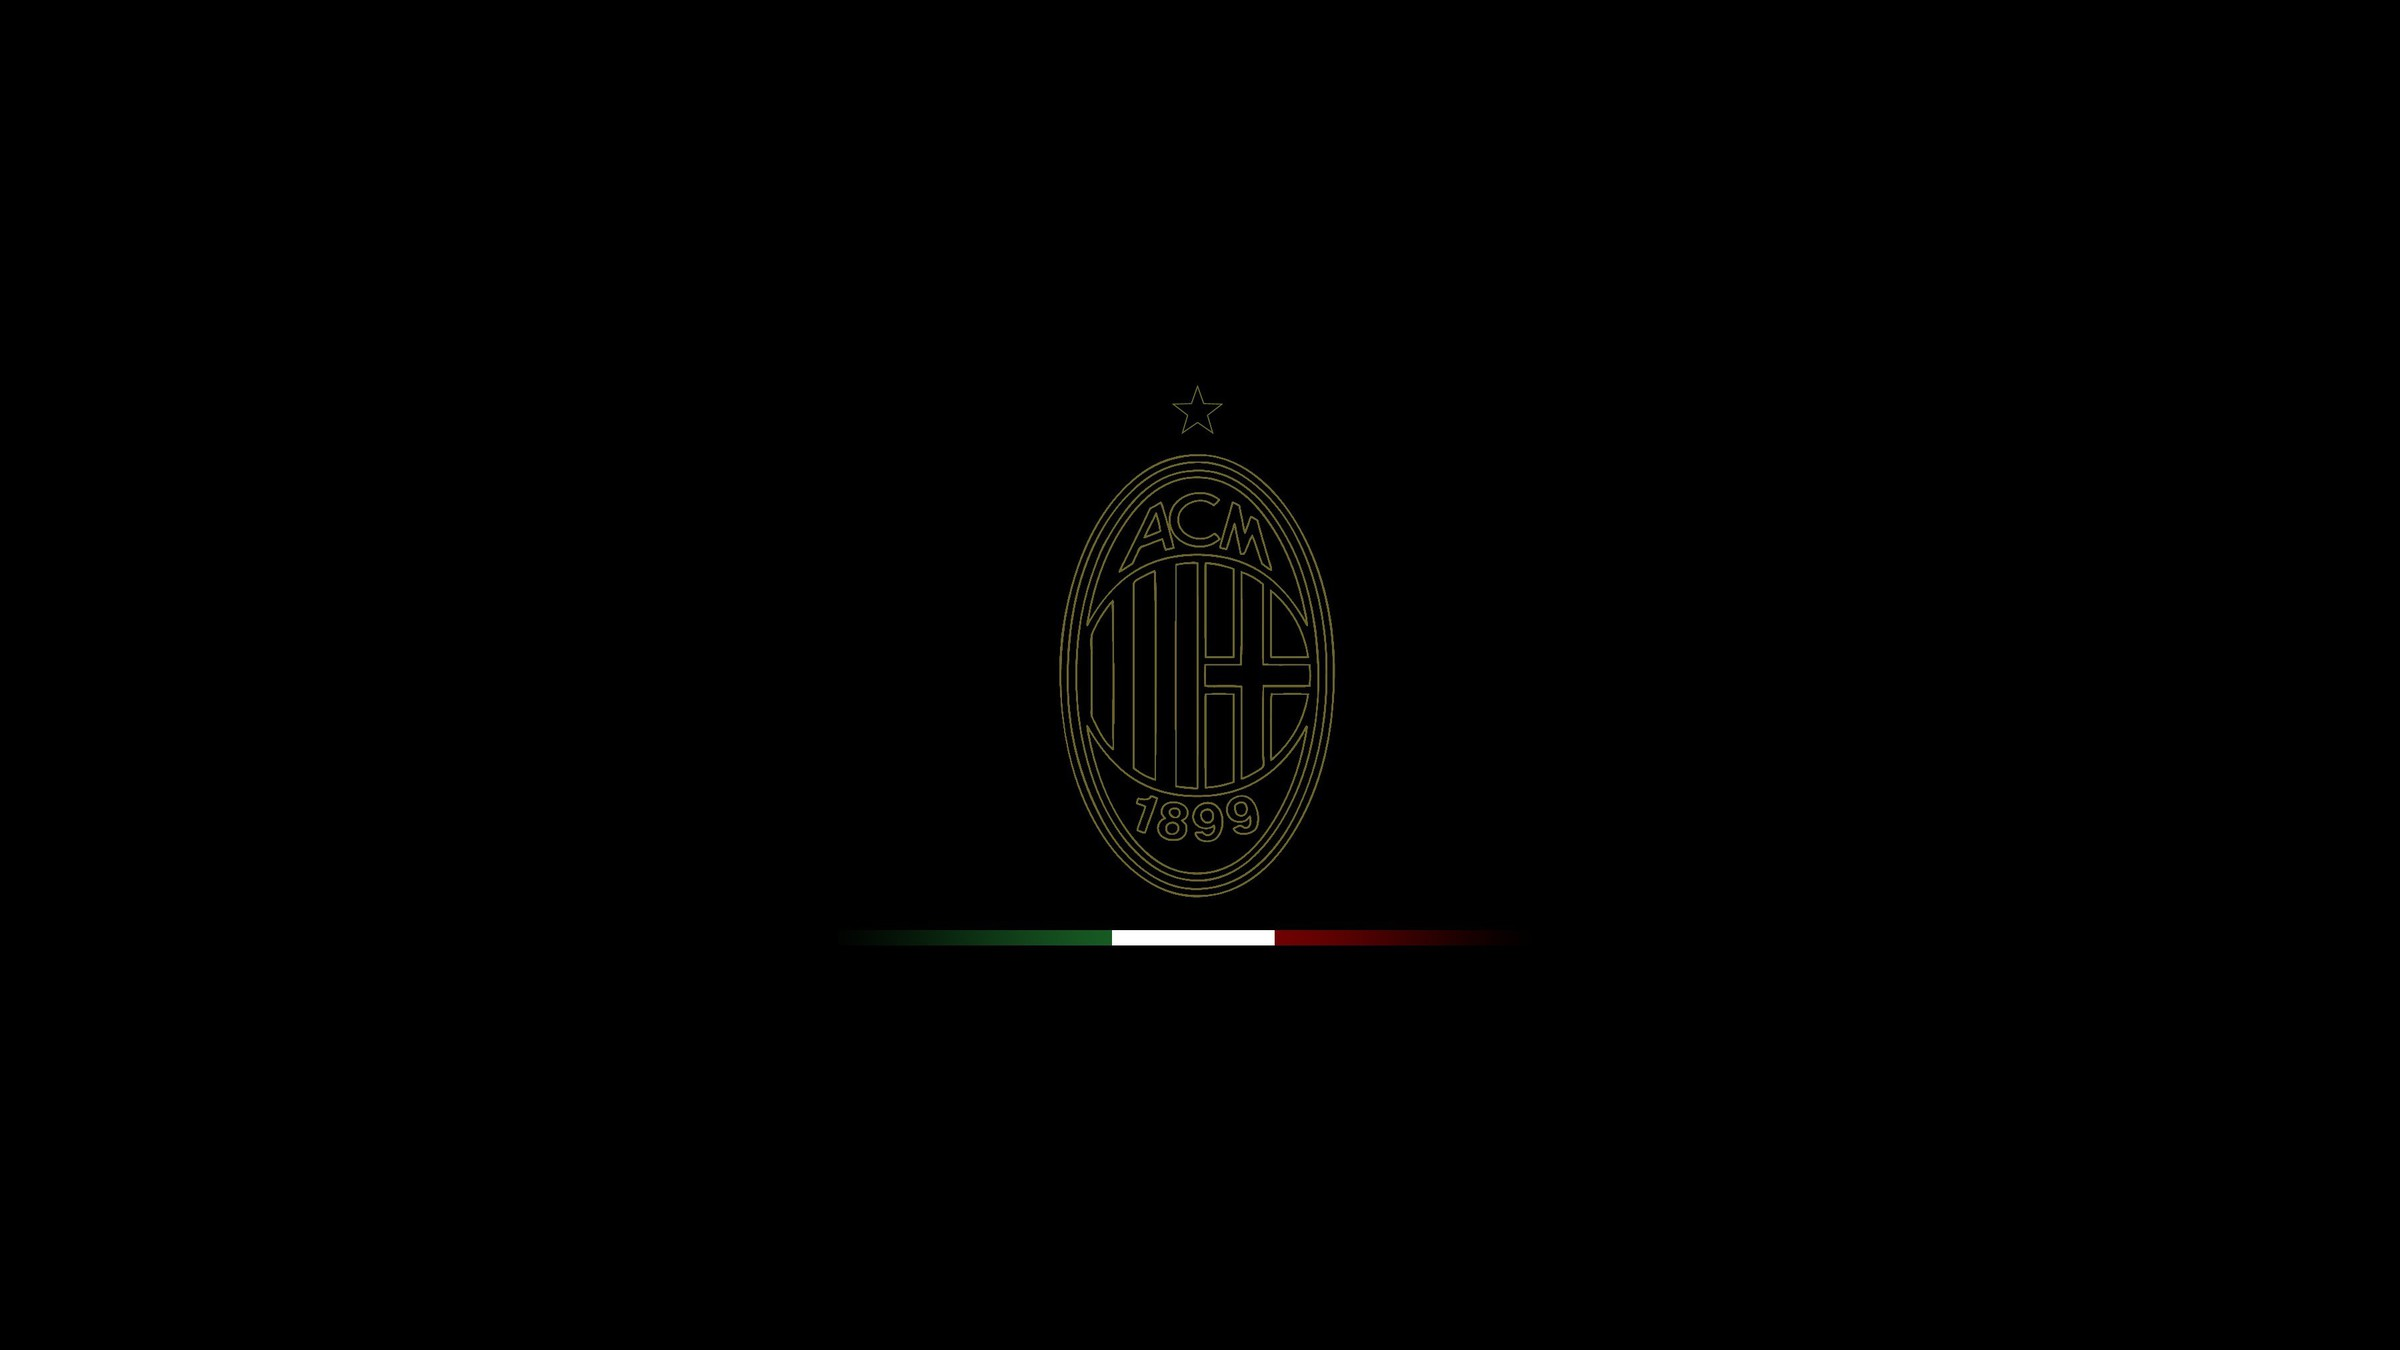 Hd wallpaper ac milan - Hd 16 9 2400x1350 2048x1152